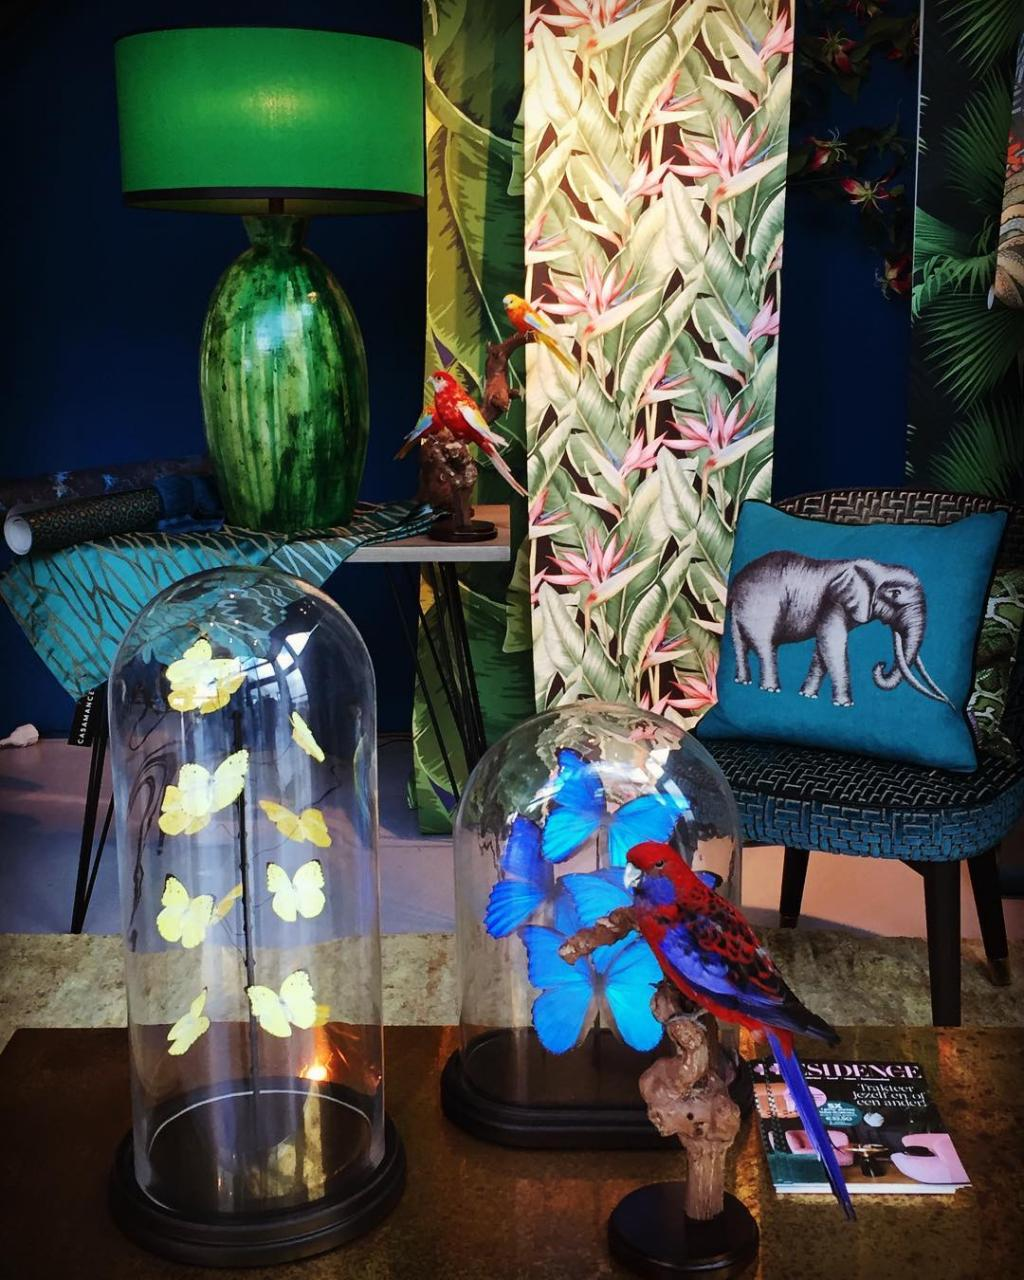 #dehotelpartners #inspiration #junglefeverfriday #hoteldesign #hospitality #colorful #interior